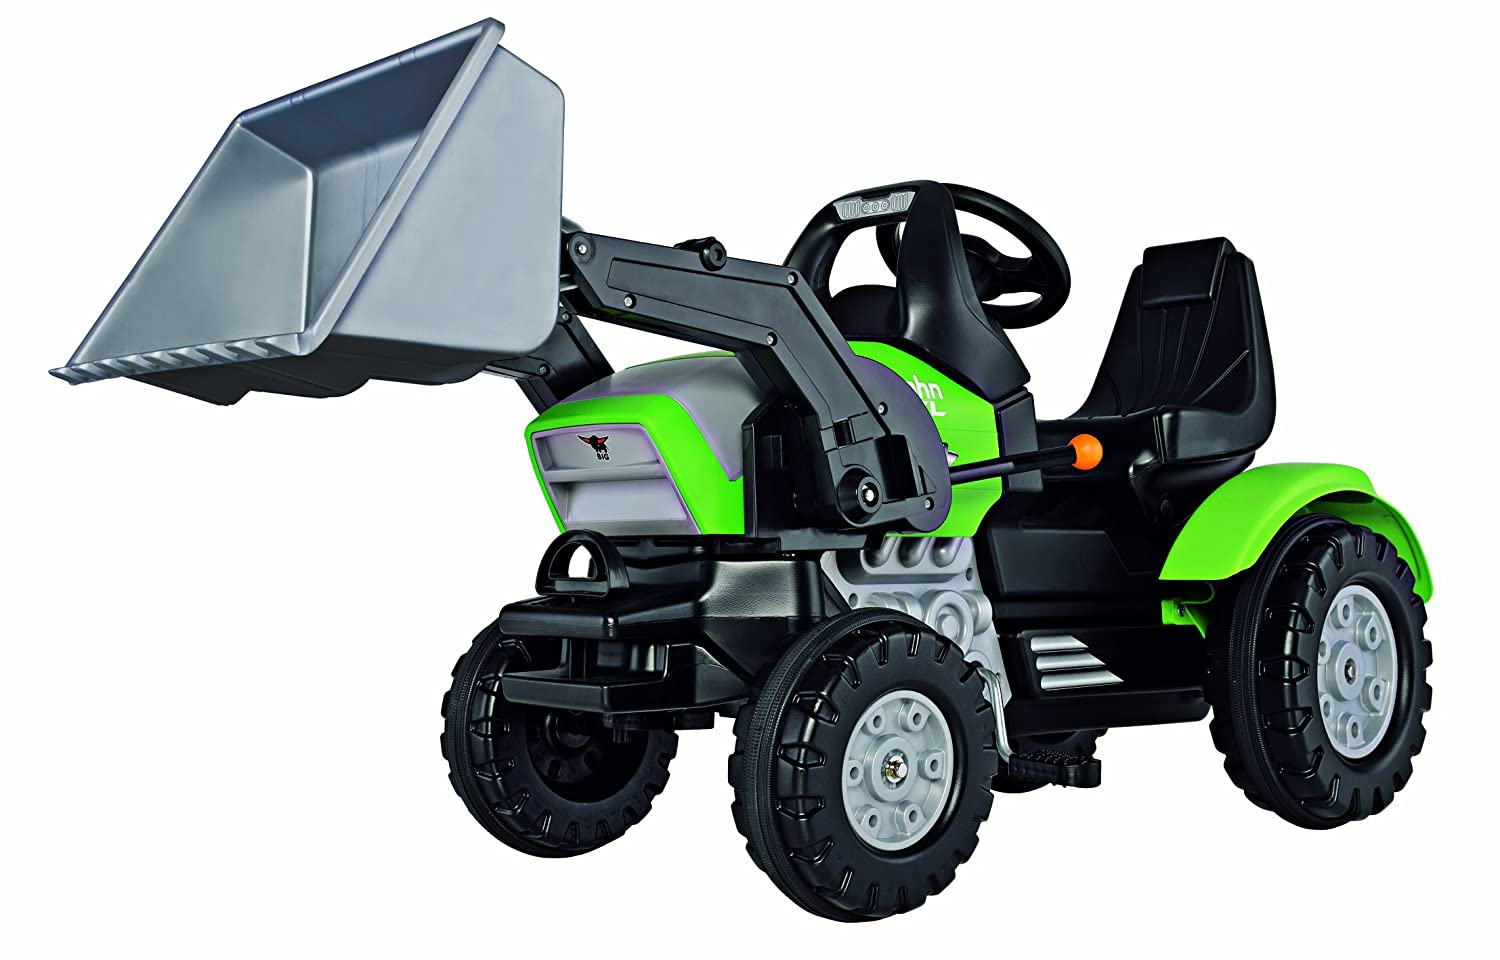 rezension big 800056546 - john-xl-loader, sehr gut ~ bagger zum